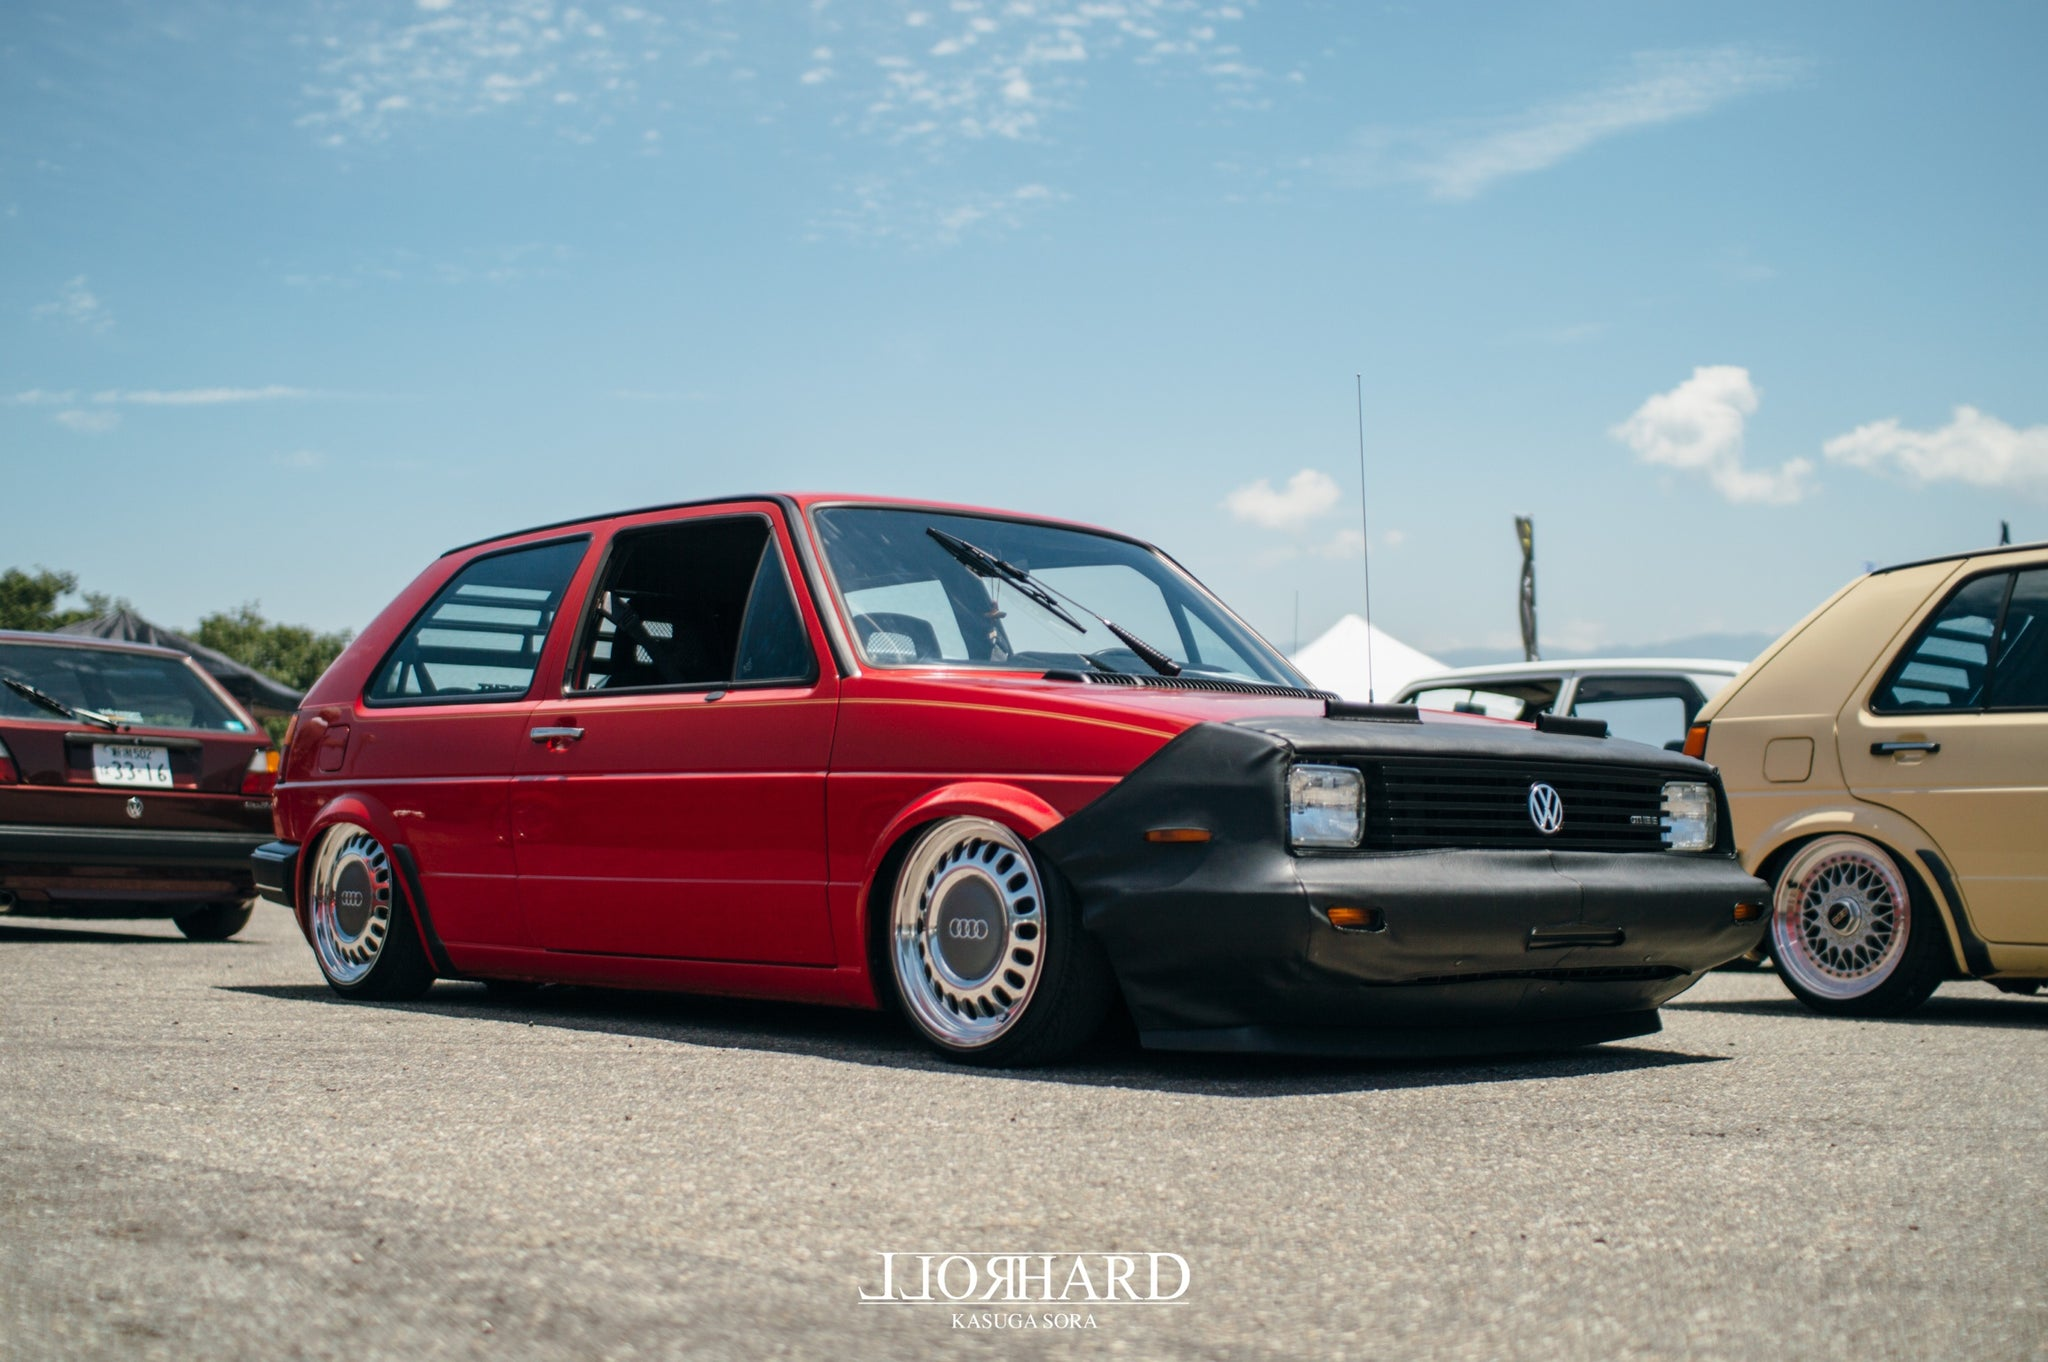 RollHard Event Coverage - Wreckin' Meet 2018. Nanto-shi, Toyama, Japan. JDM, BBS RS, Schimdt TH, Euro style, Volkswagen, modified cars, japanese tuning scene